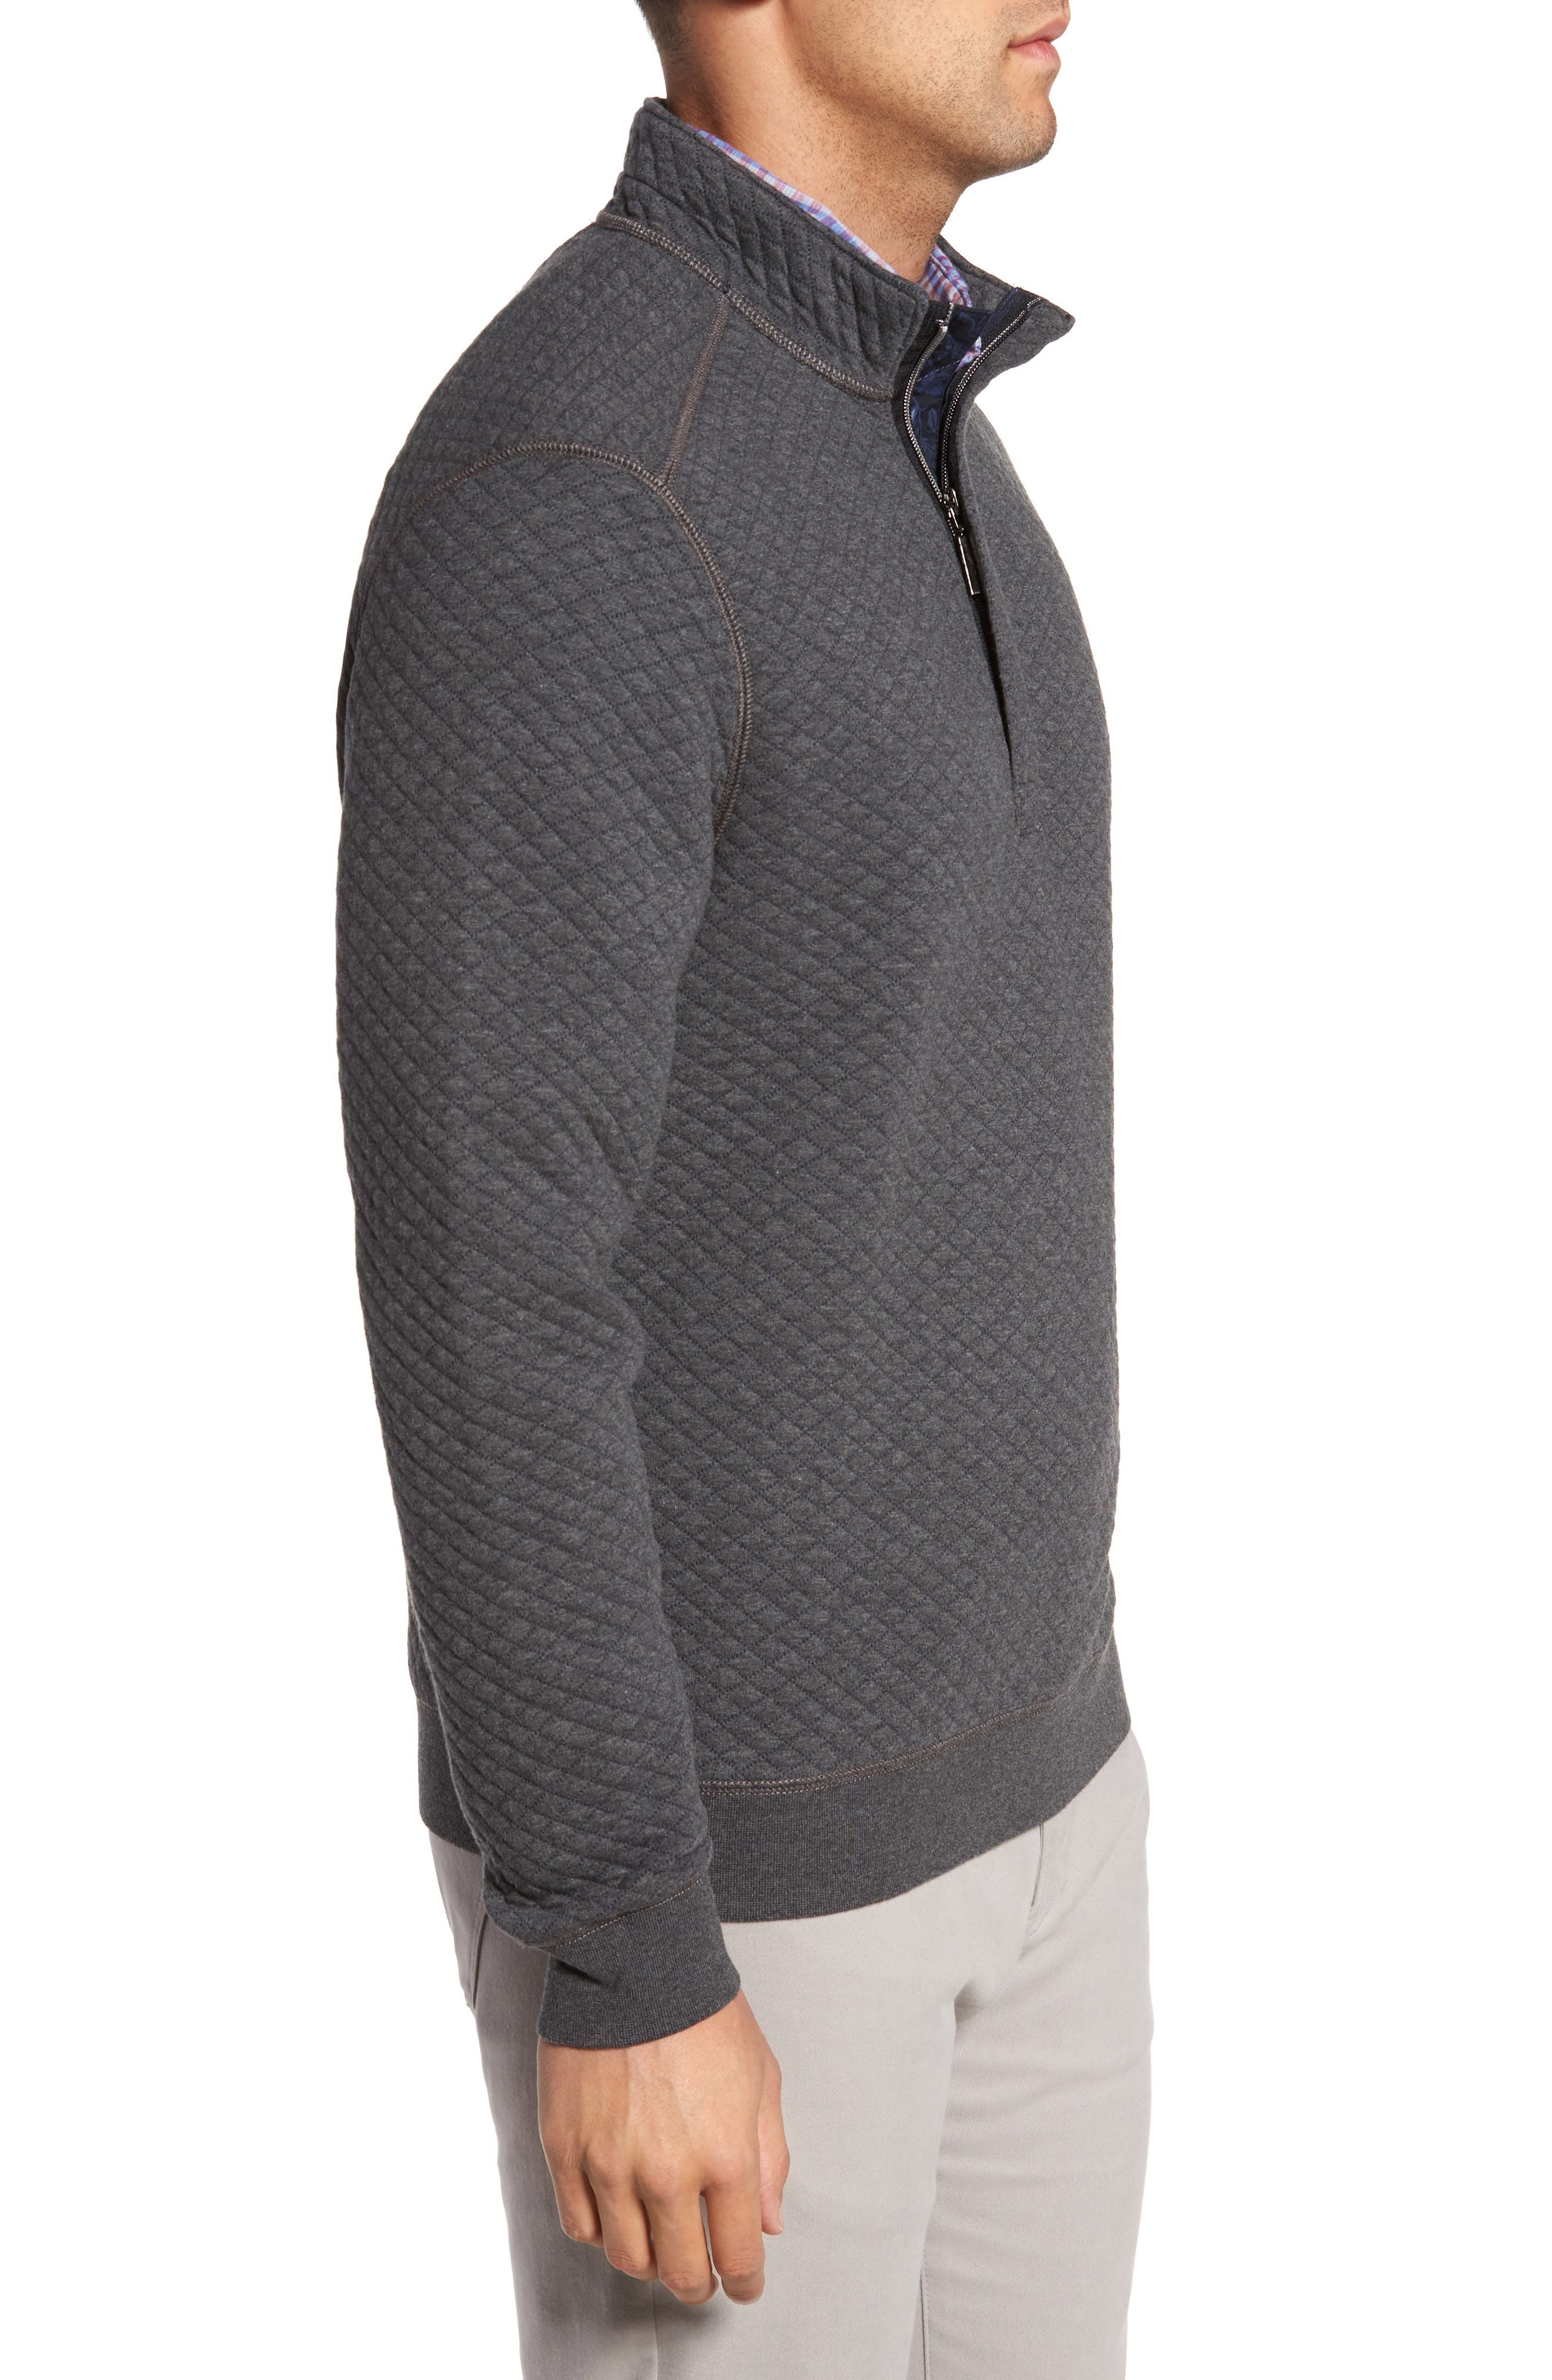 TOMMY BAHAMA, Quiltessential Standard Fit Quarter Zip Pullover, Alternate thumbnail 3, color, CHARCOAL HEATHER